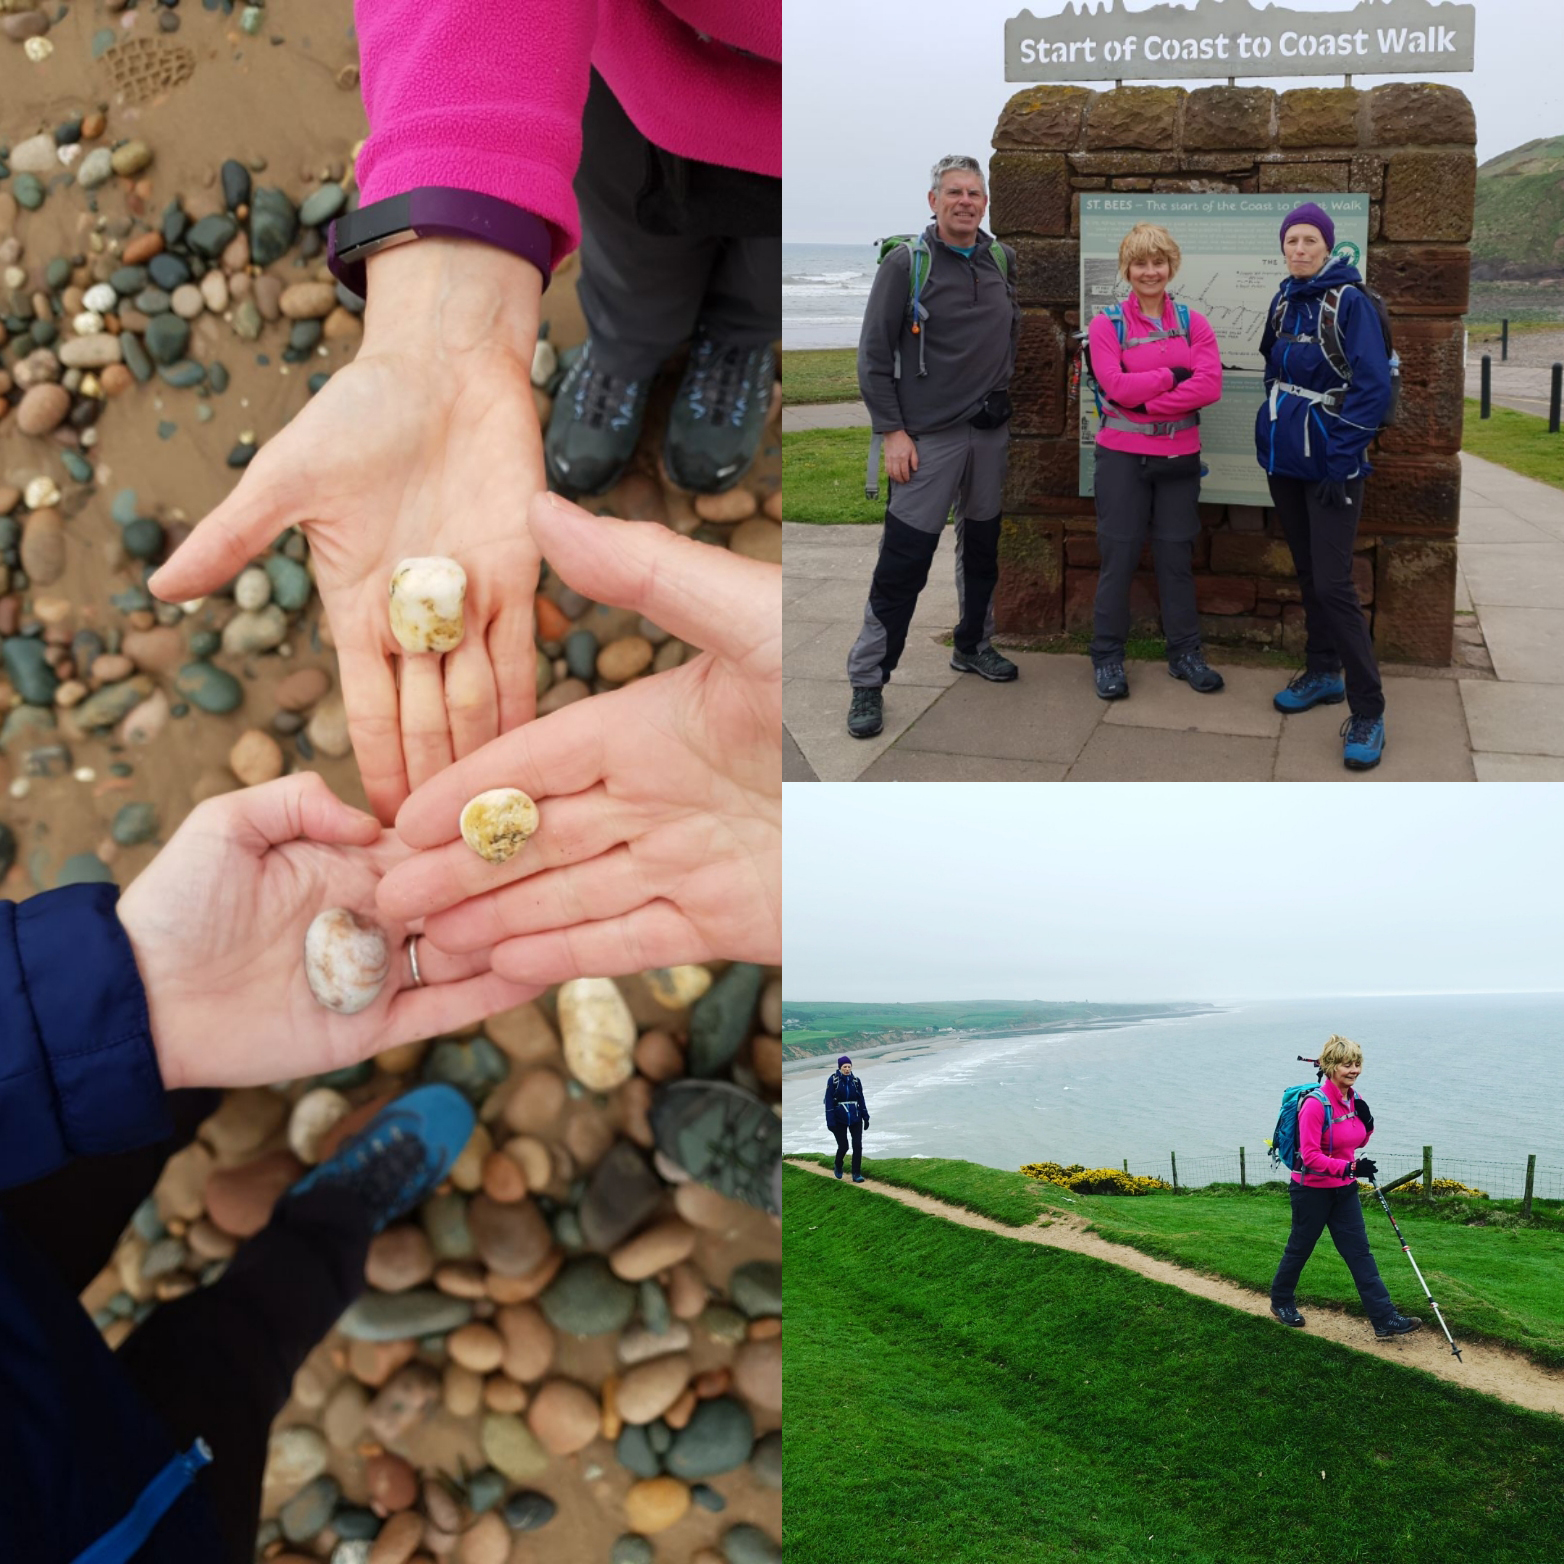 Three pictures showing St Bees at the start of the Wainwright Coast to Coast walk